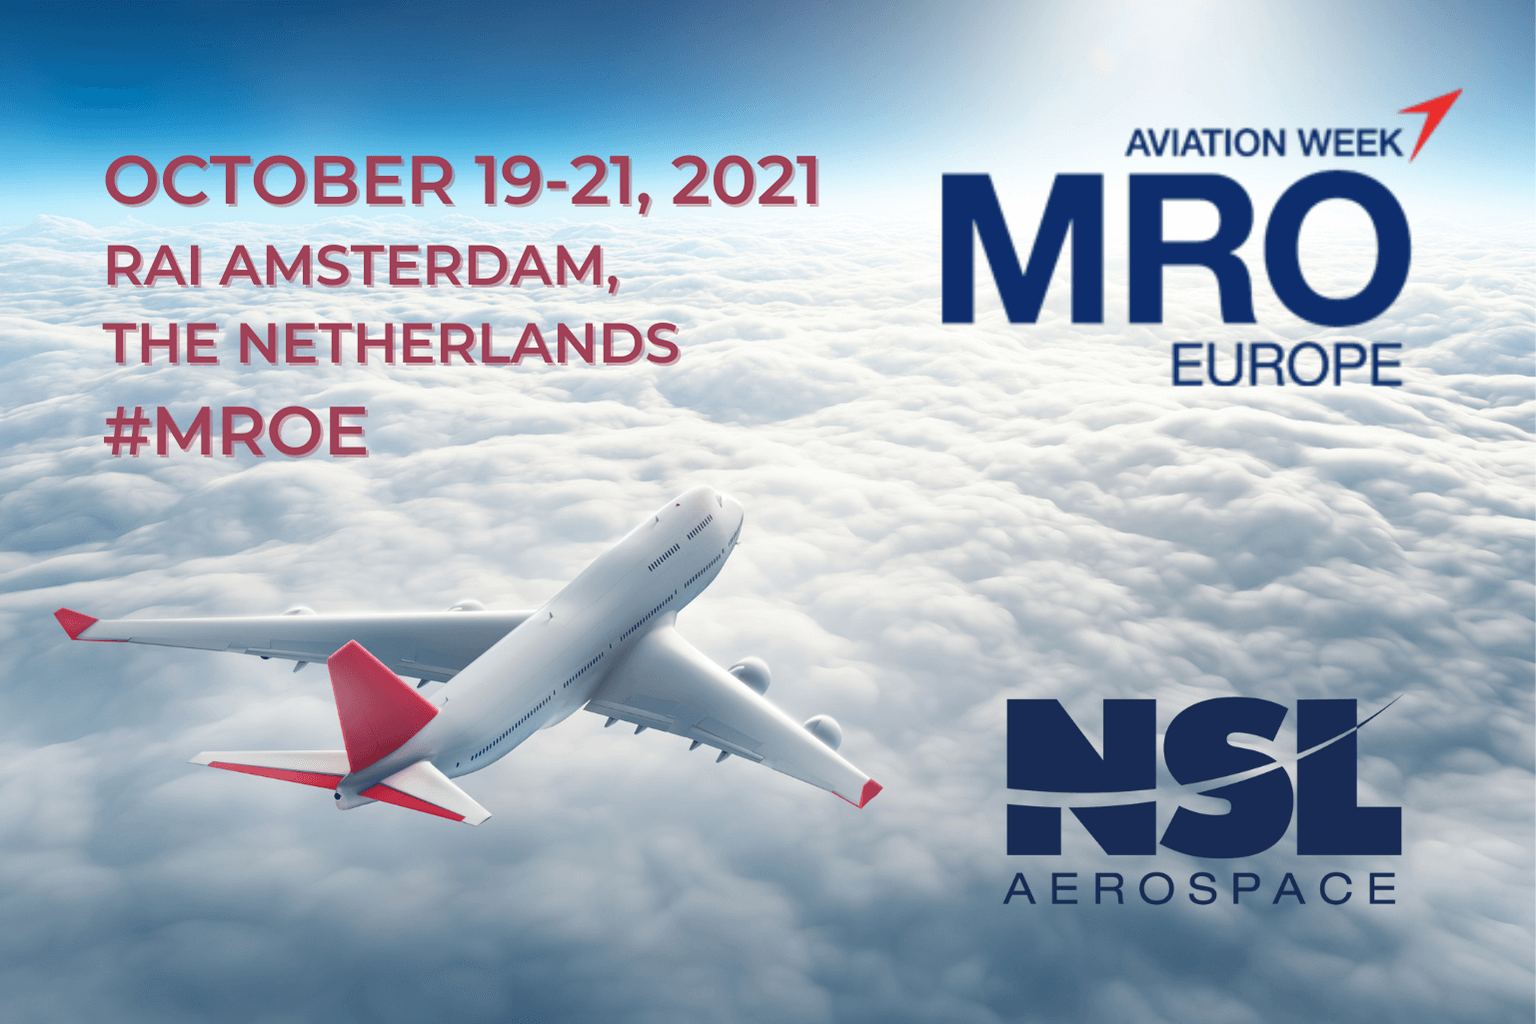 MRO Europe Aviation Conference 2021 from October 19-21